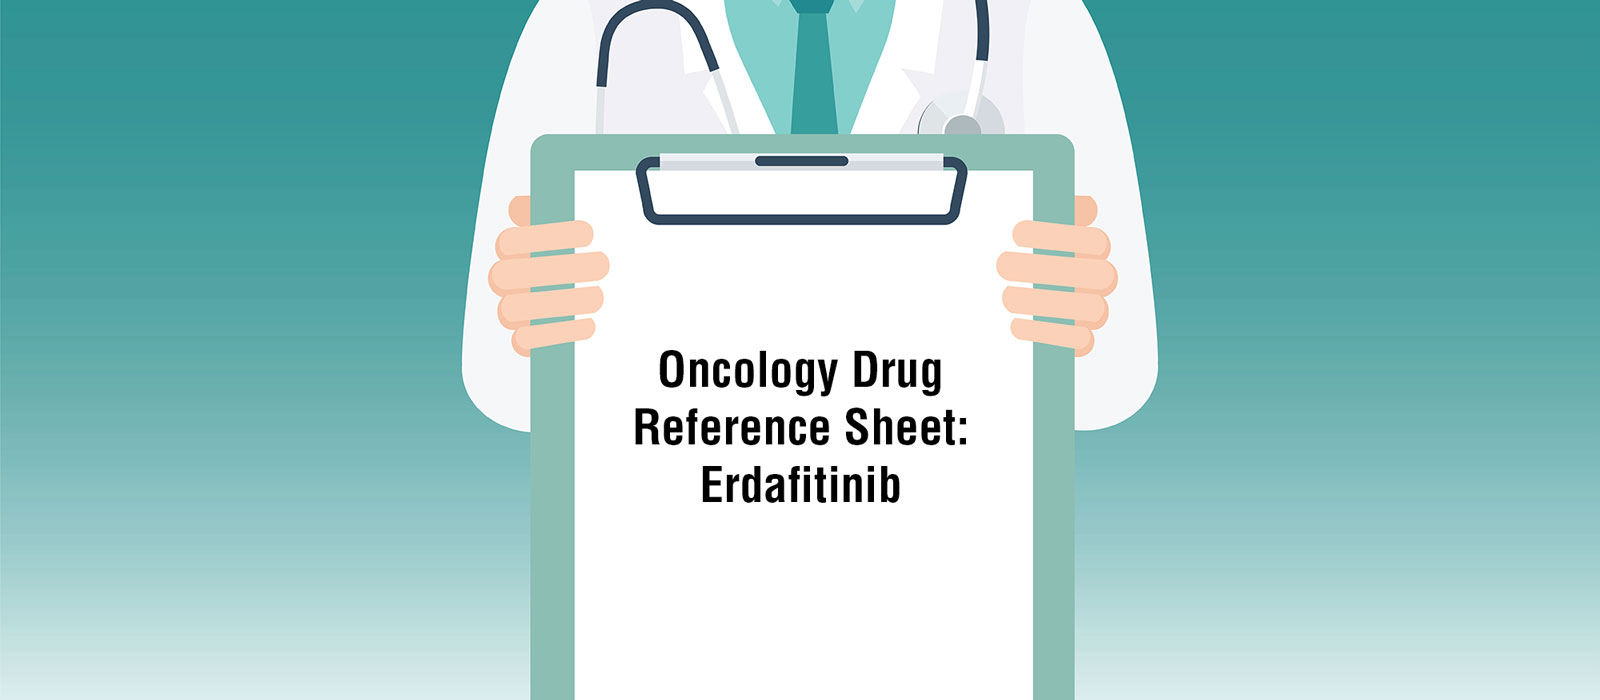 Oncology Drug Reference Sheet: Erdafitinib